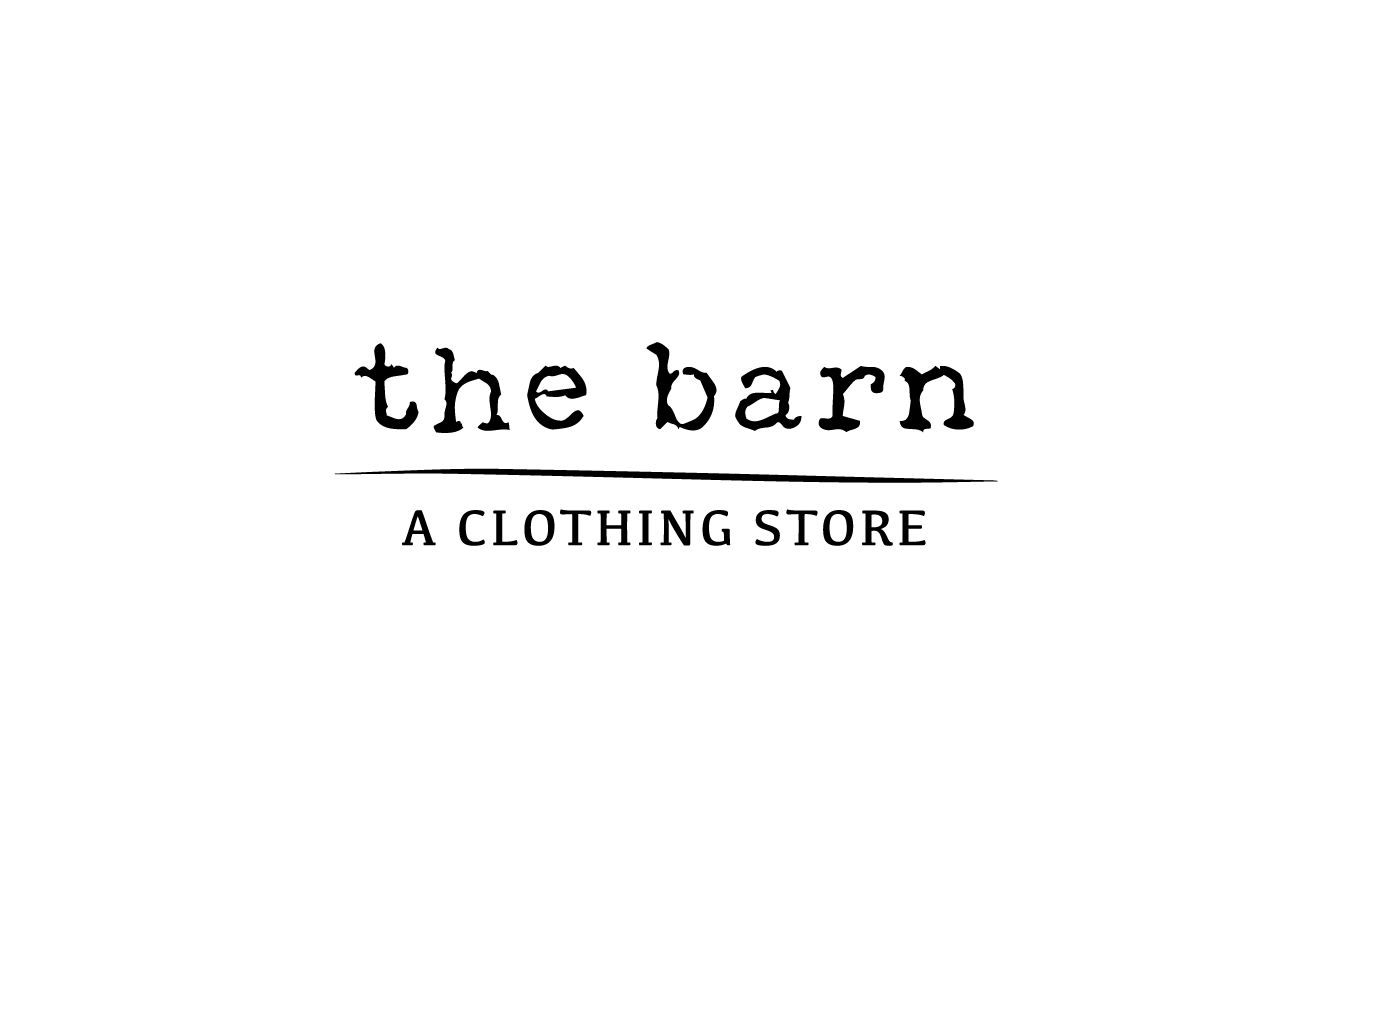 The barn logo 01